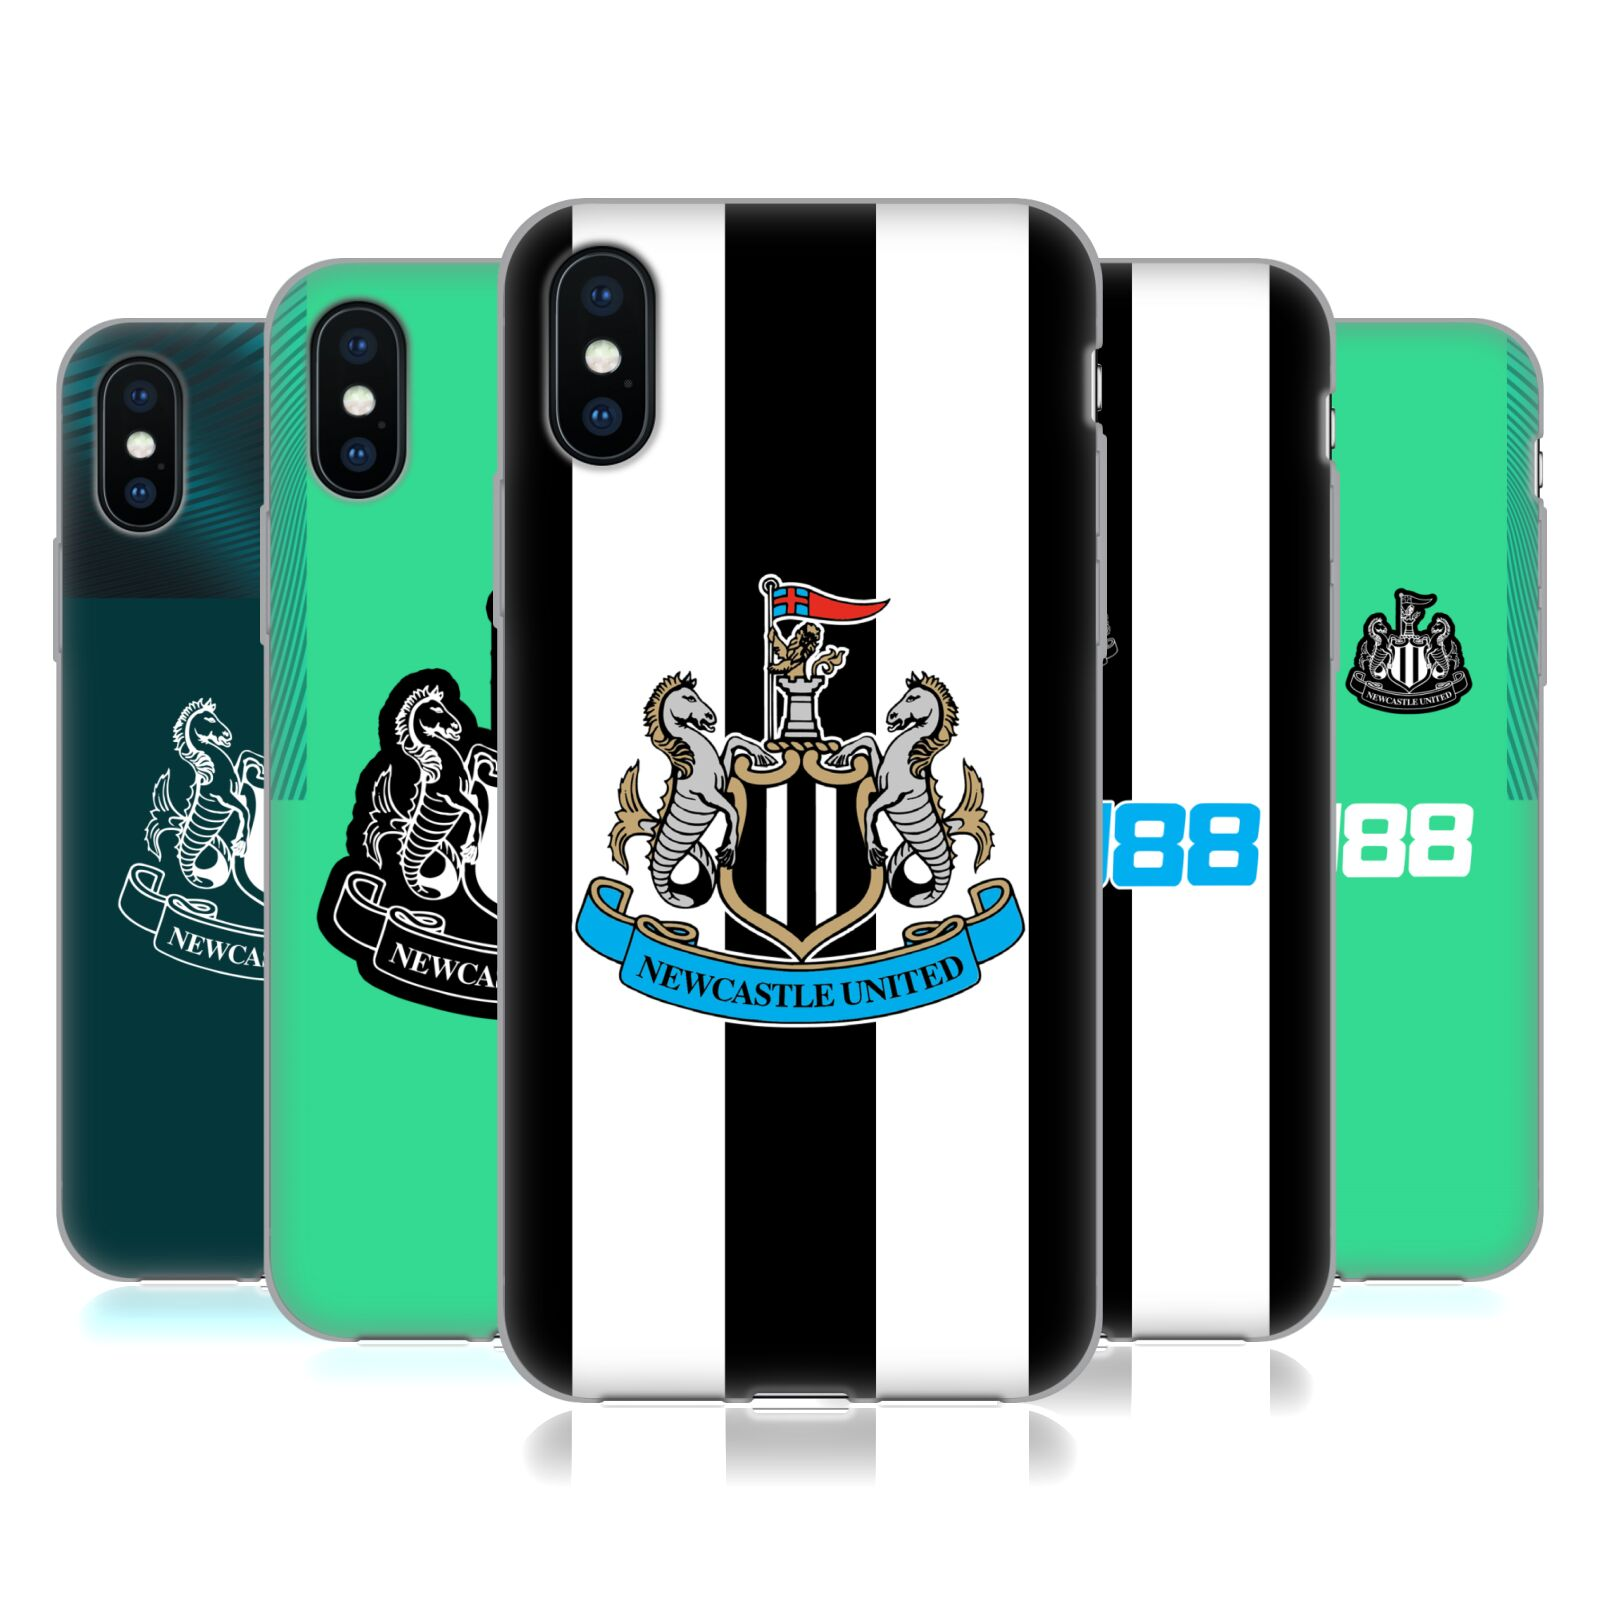 Newcastle United FC NUFC <!--translate-lineup-->2019/20 Crest Kit<!--translate-lineup-->